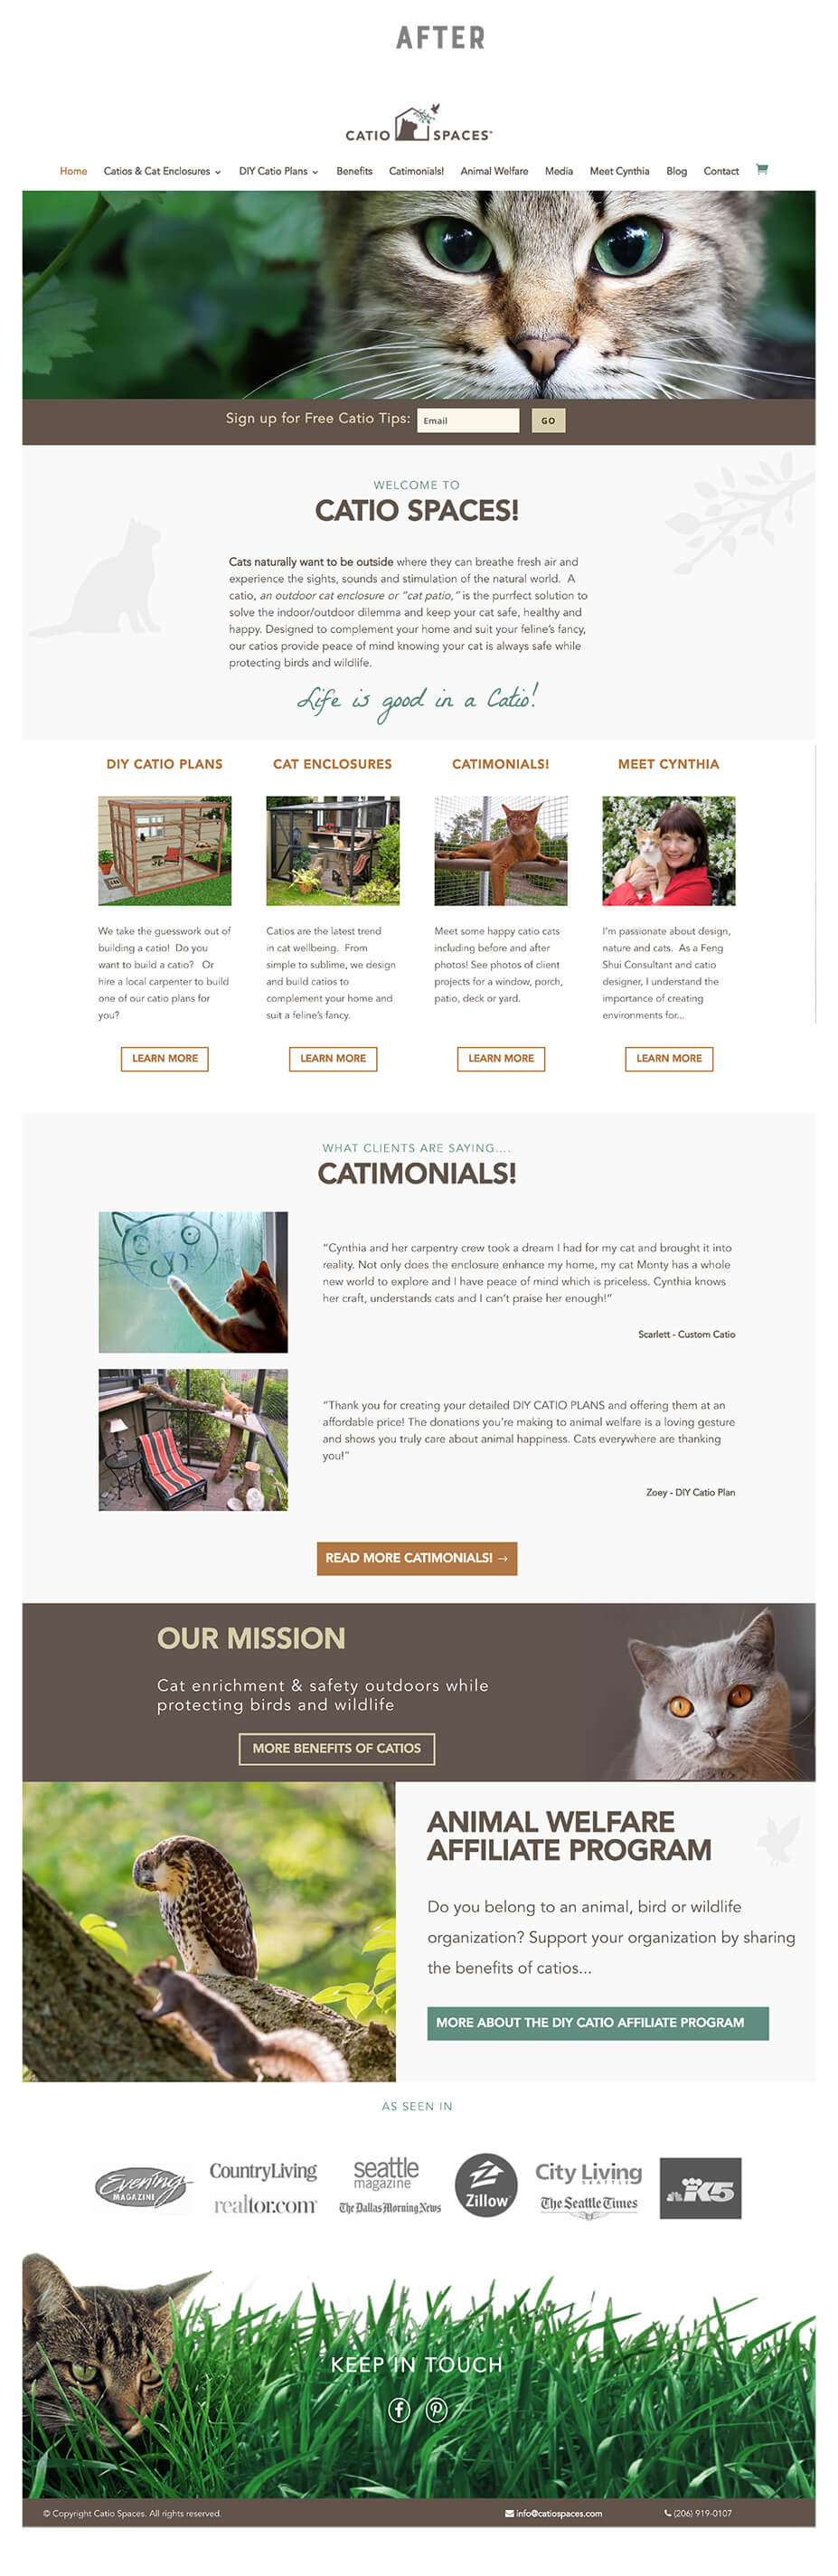 Catiospaces.com website after branding